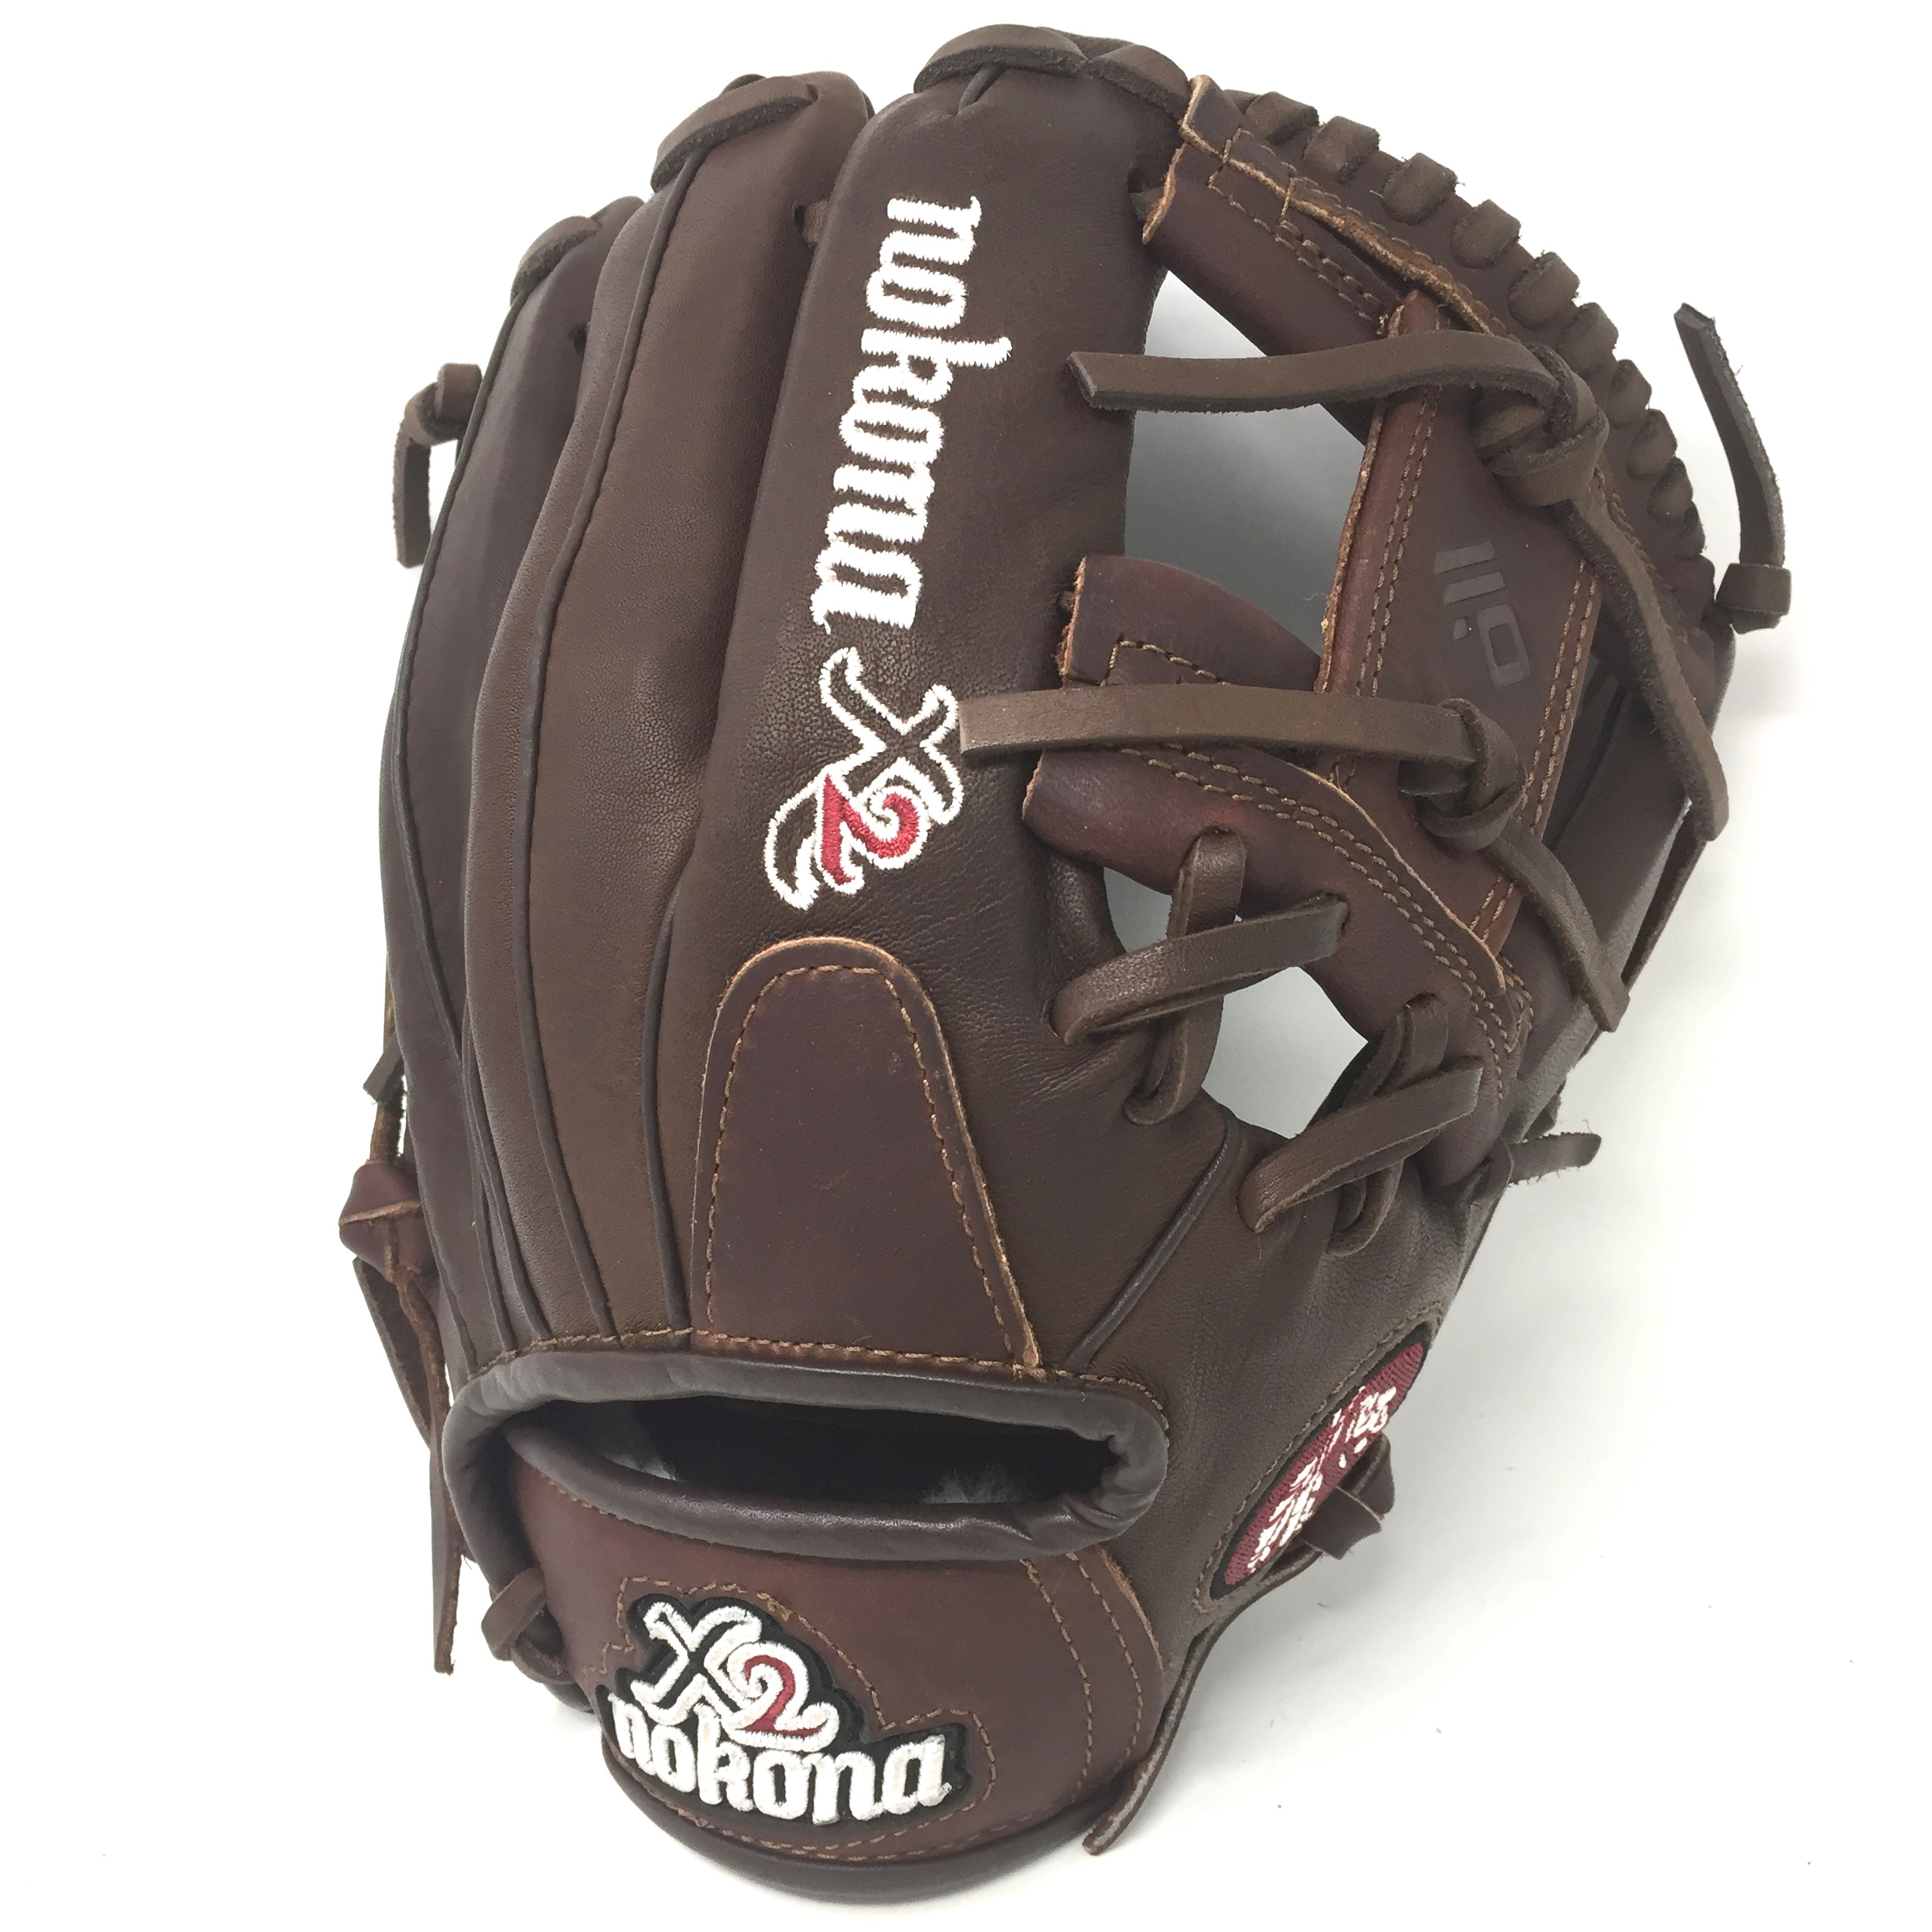 nokona-x2-elite-11-5-baseball-glove-i-web-right-hand-throw X2-1150I-RightHandThrow  808808891420 <p>11.5 Pitcher/Infield Pattern I-Web Stampede + Kangaroo Leather Conventional Open Back